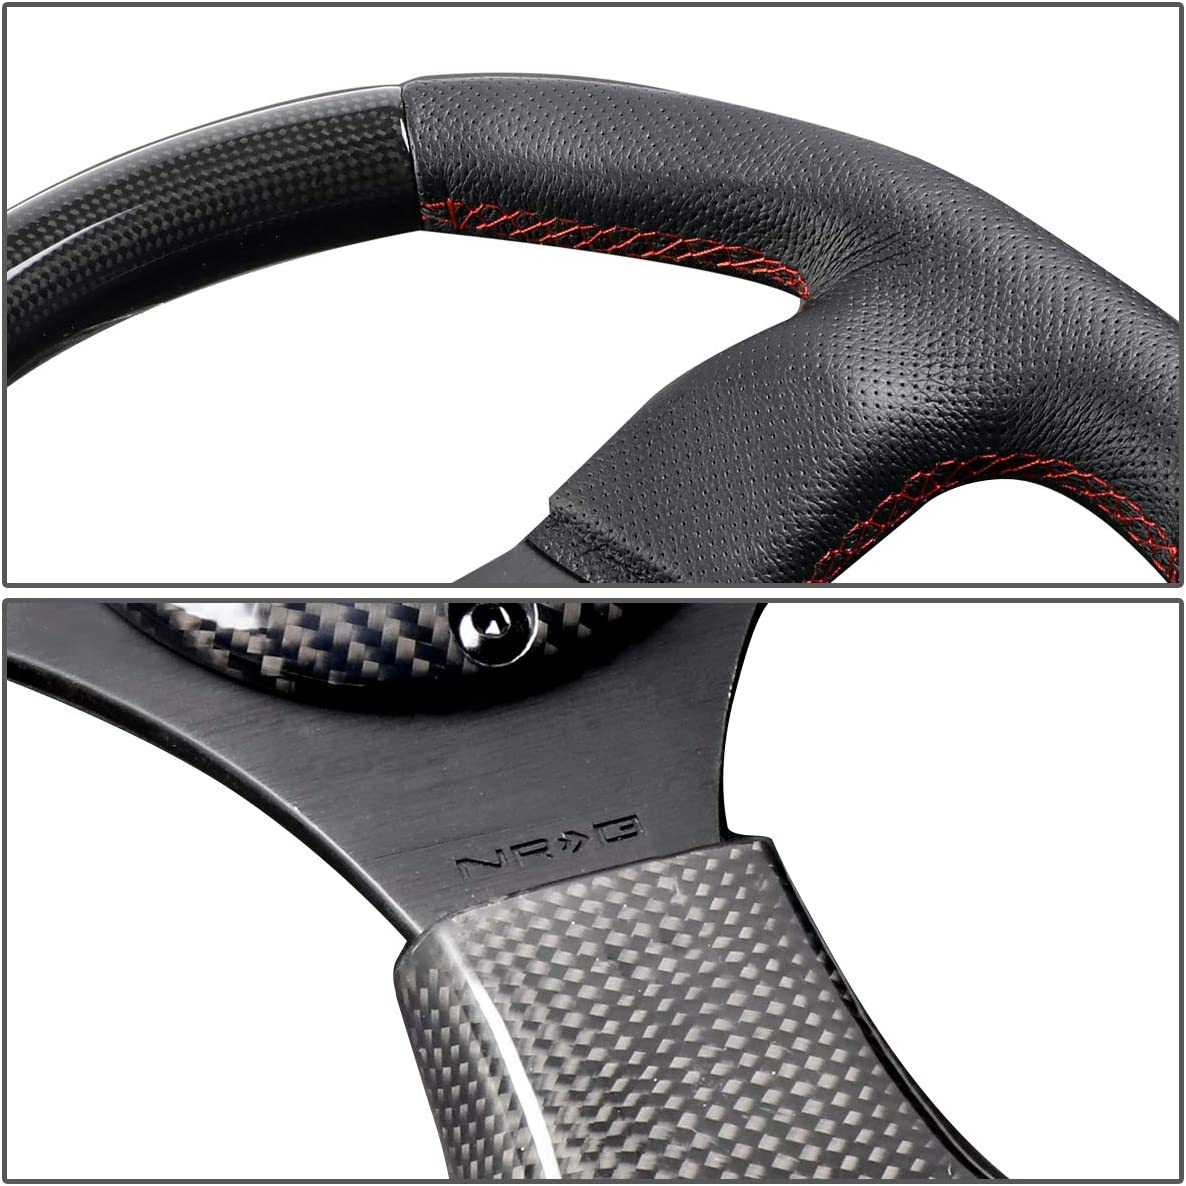 NRG Innovations ST-009CFRS Carbon Fiber Steering Wheel with Red stitching 320mm Flat Bottom